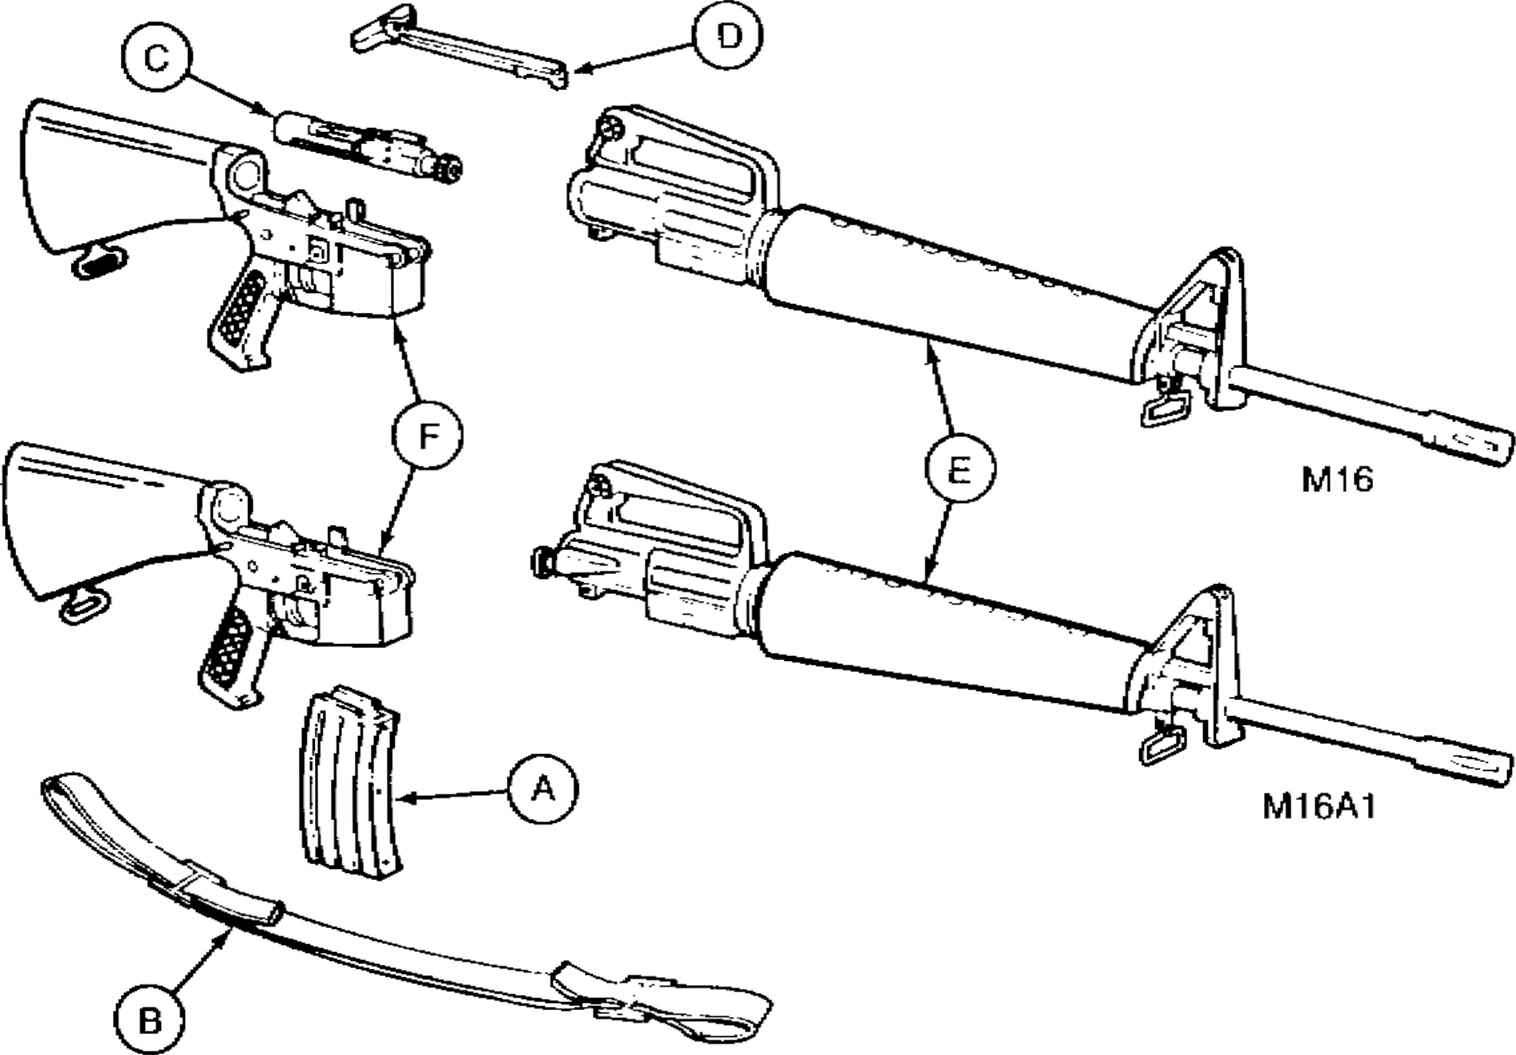 AR 15 M16 Blueprint 33 Pages moreover What Is The Difference Between The Stag 15 And The Stag 16 as well 10 22 Full Auto Parts KEdbl0 i690FC2L1UUzILyocfA8uBsn1ogqYkxu8v5c in addition Ar 15 Blueprints also M16 Rifle Diagram. on m16 auto sear blueprint